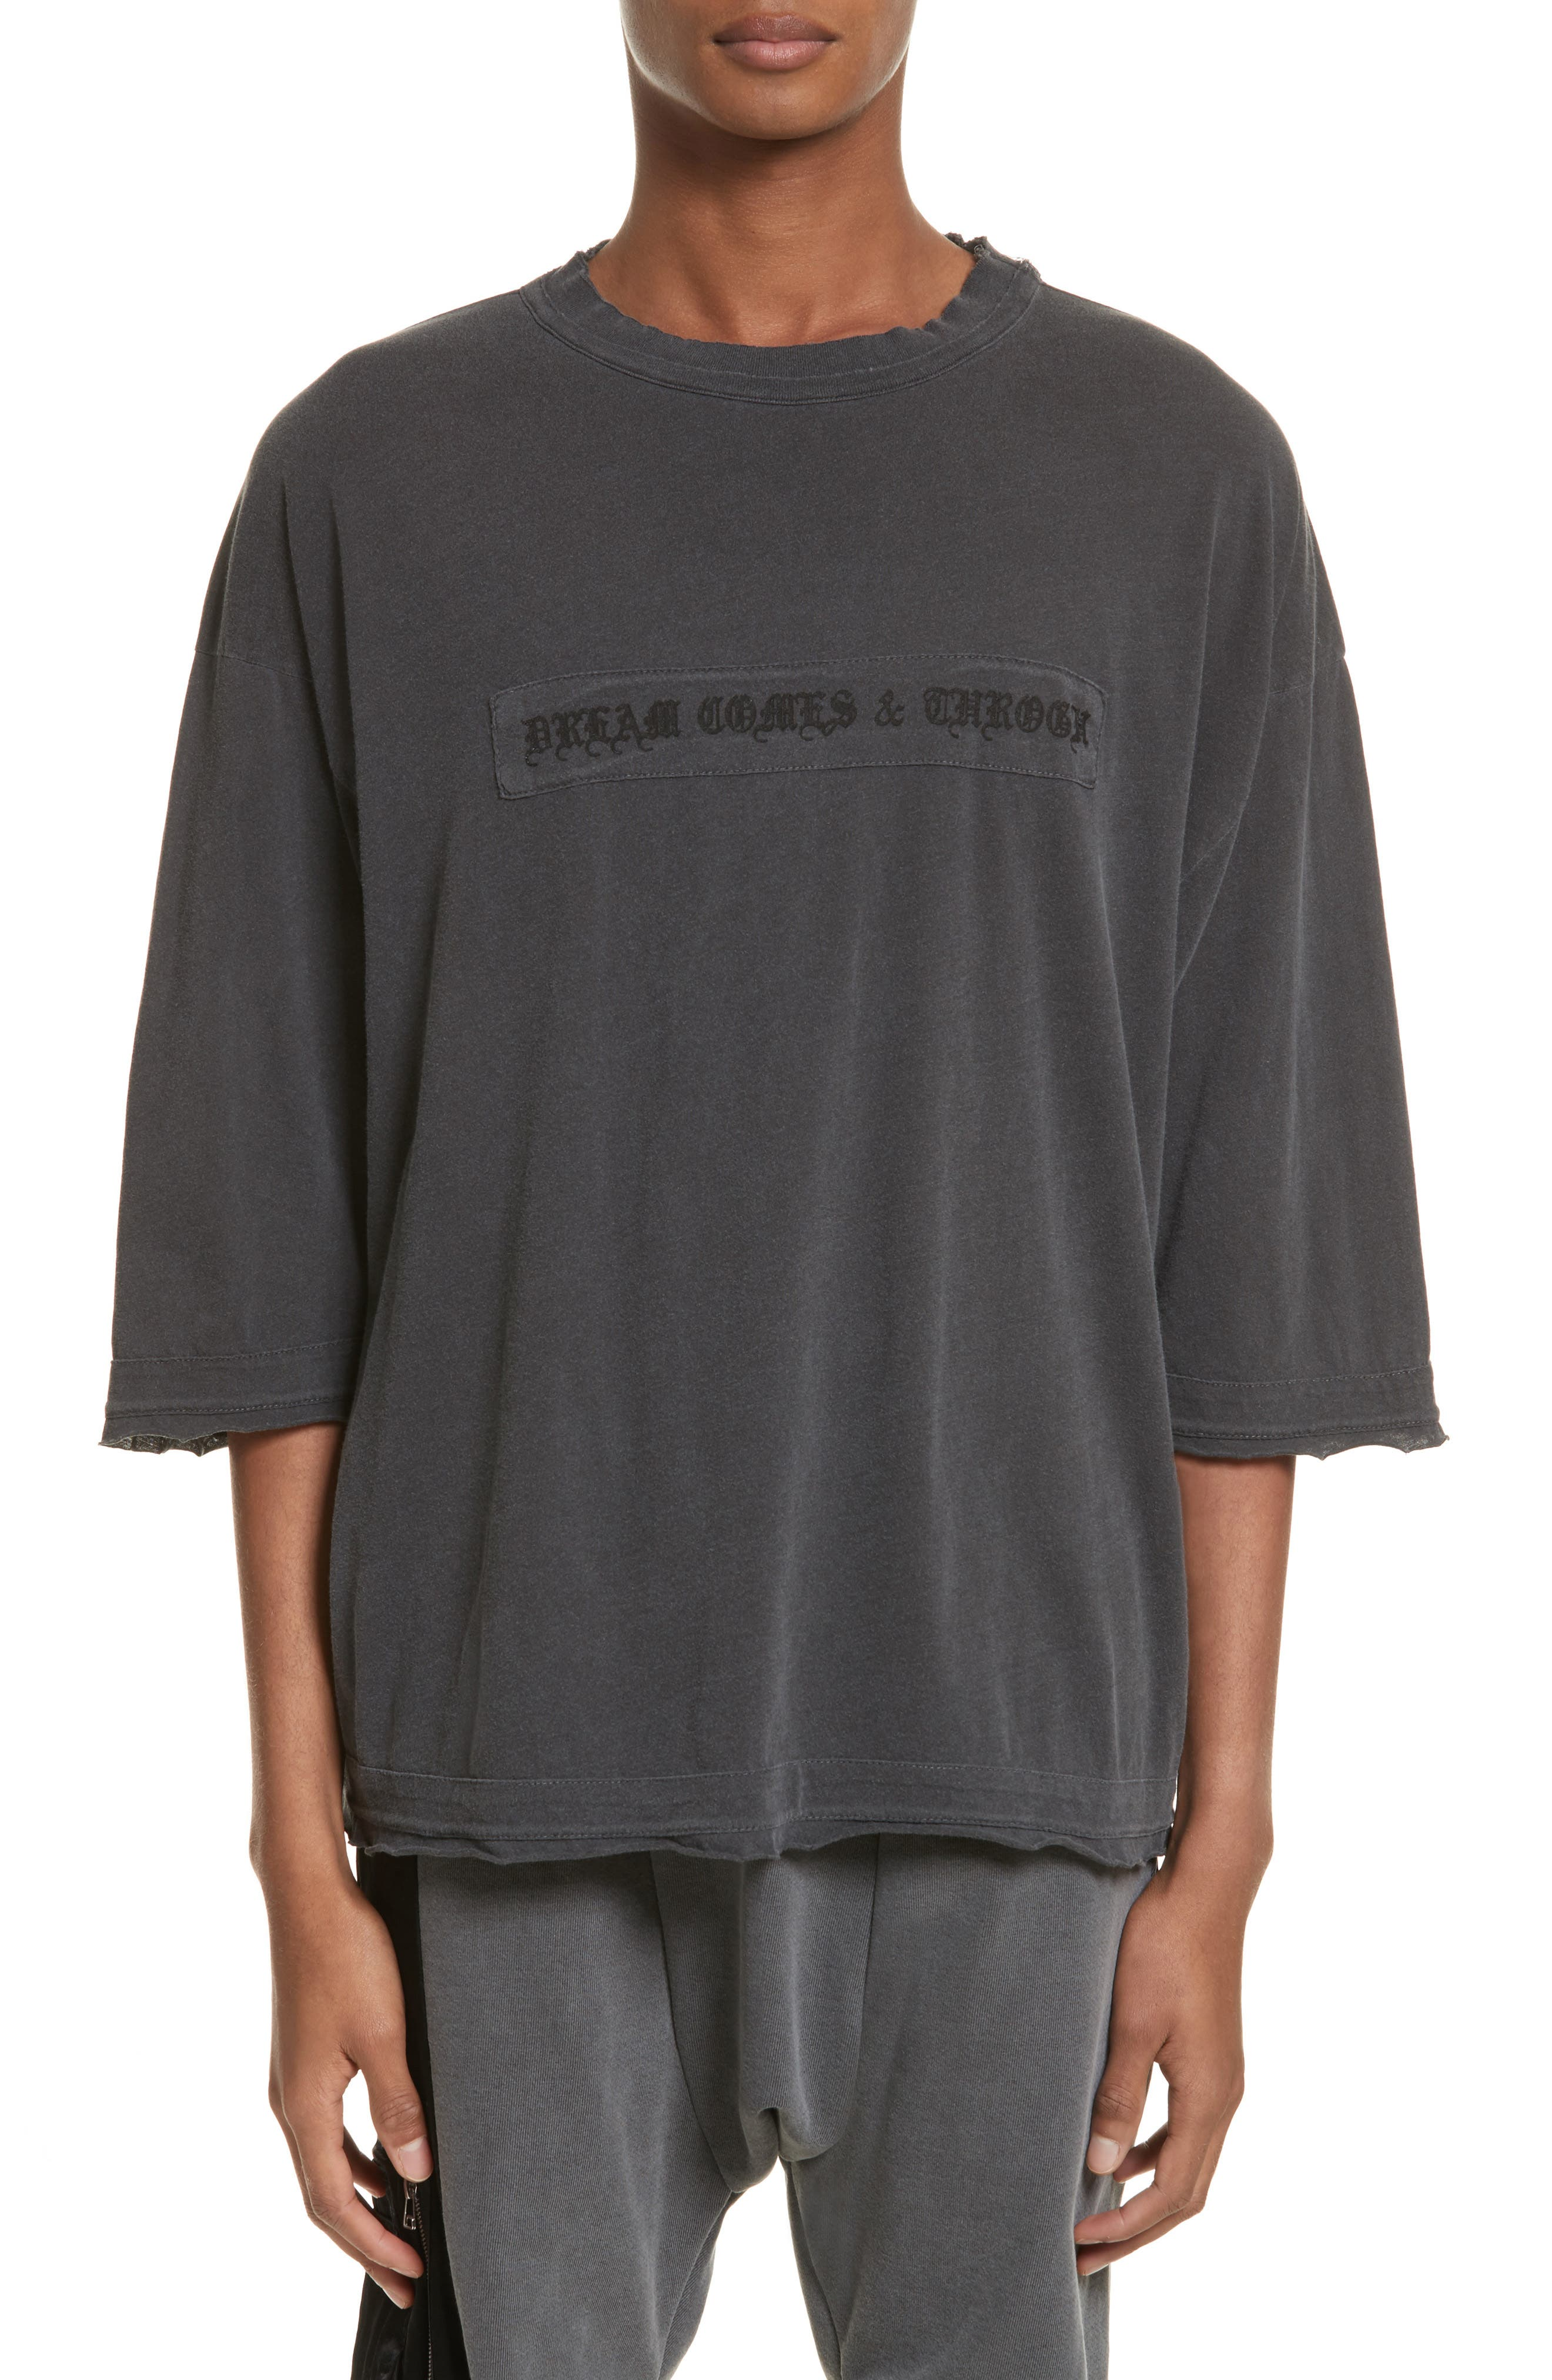 Eshu Oversize T-Shirt,                         Main,                         color, Black Pigment